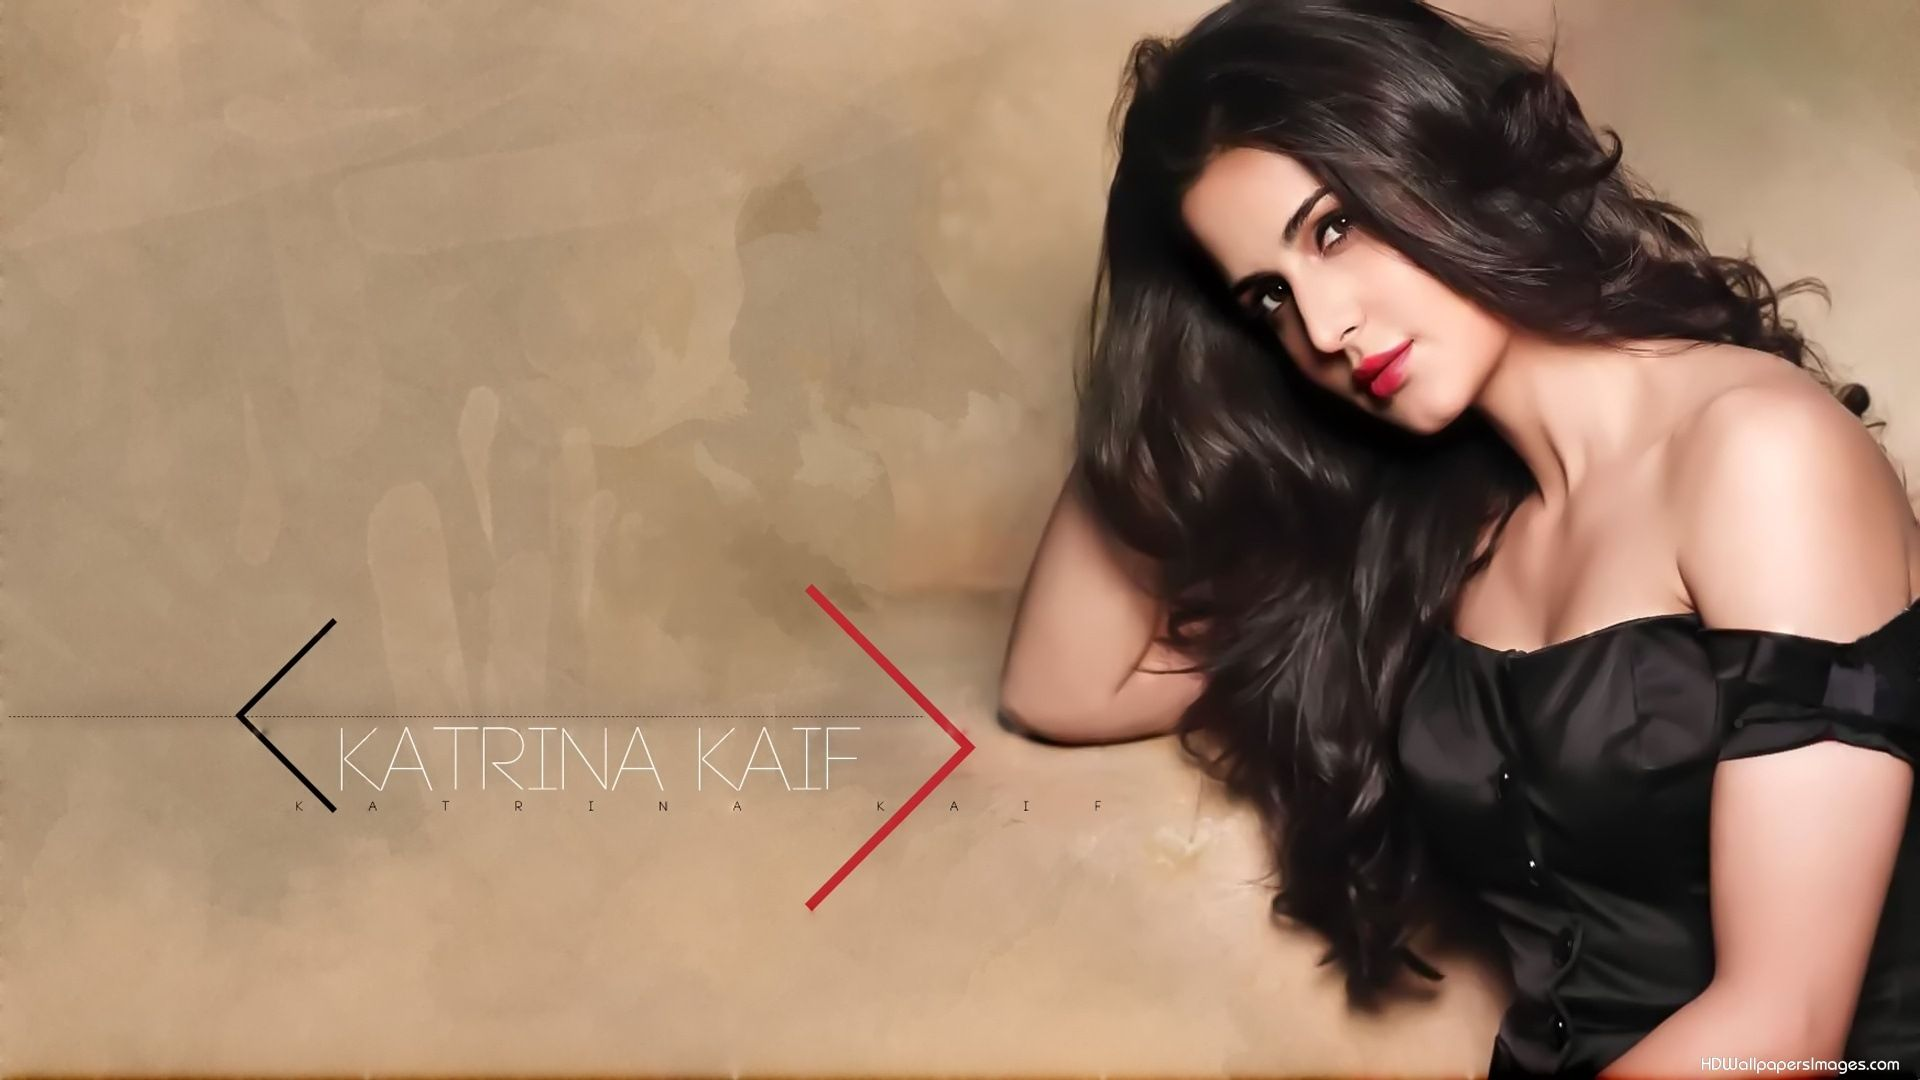 pinnikunj panchal on katrina kaif | pinterest | katrina